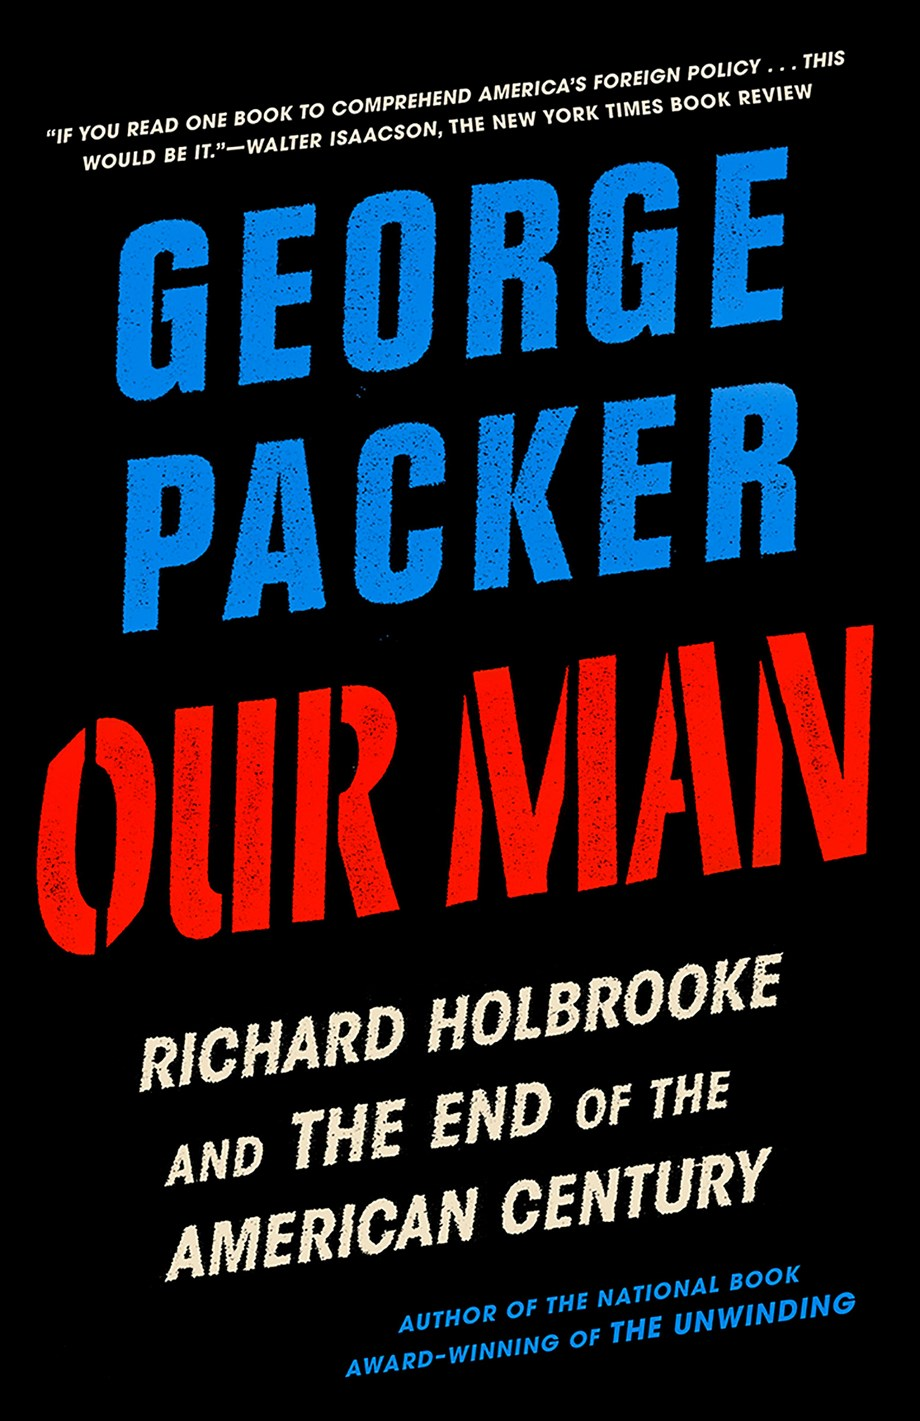 Our Man: Richard Holbrooke and the End of the American Century by George Packer (Knopf)